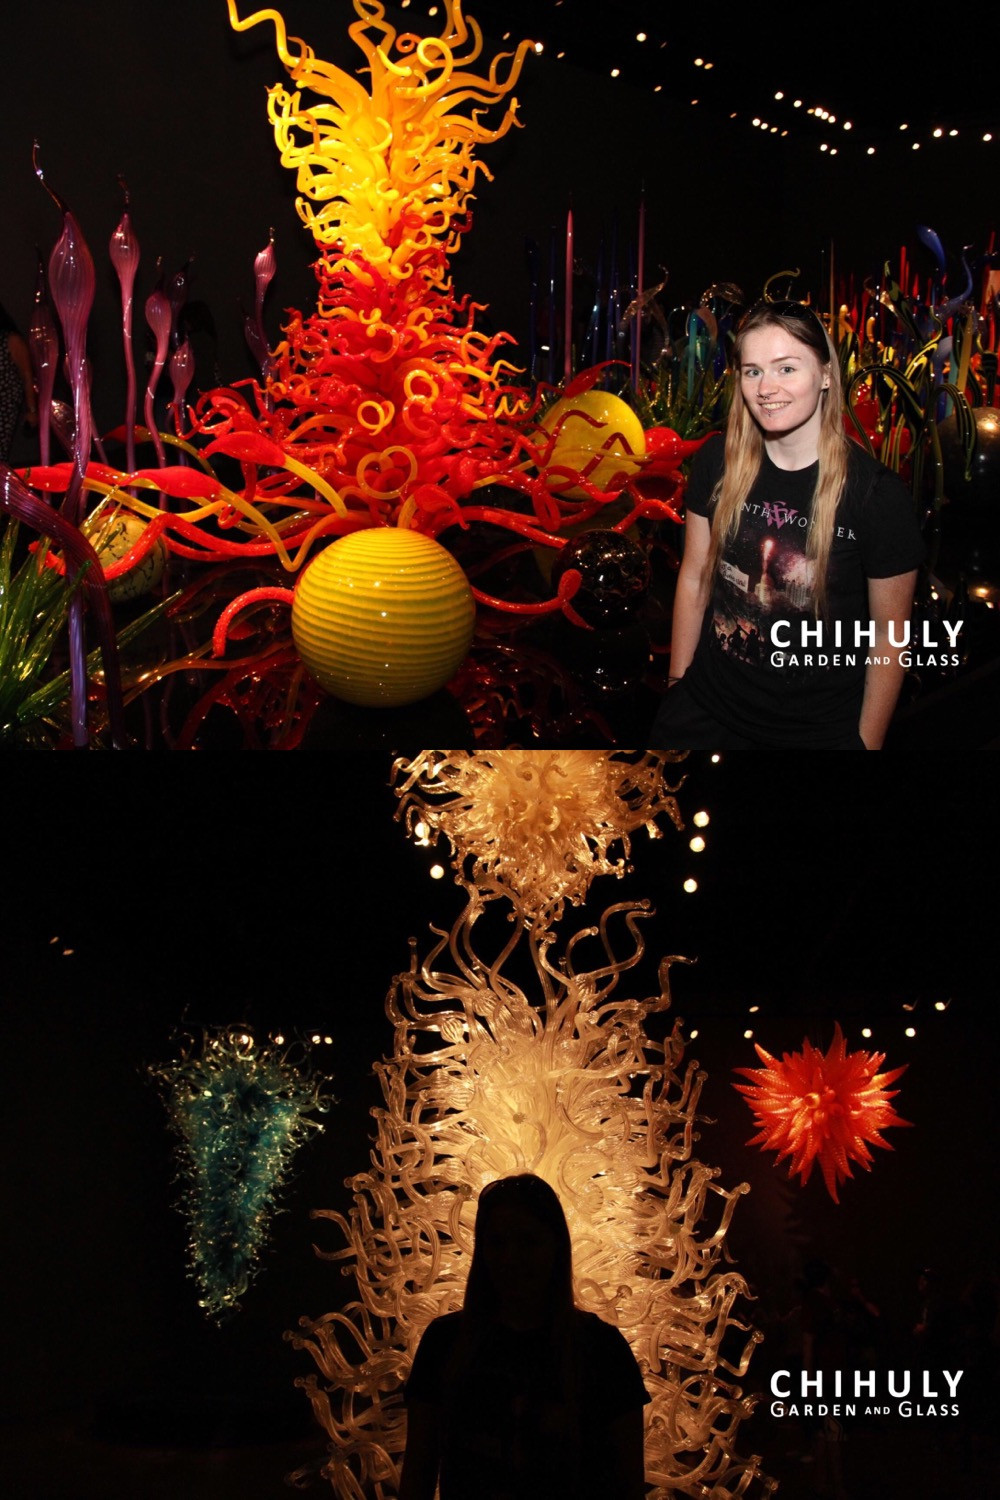 Visiting the Chihuly Garden and Glass museum in Seattle